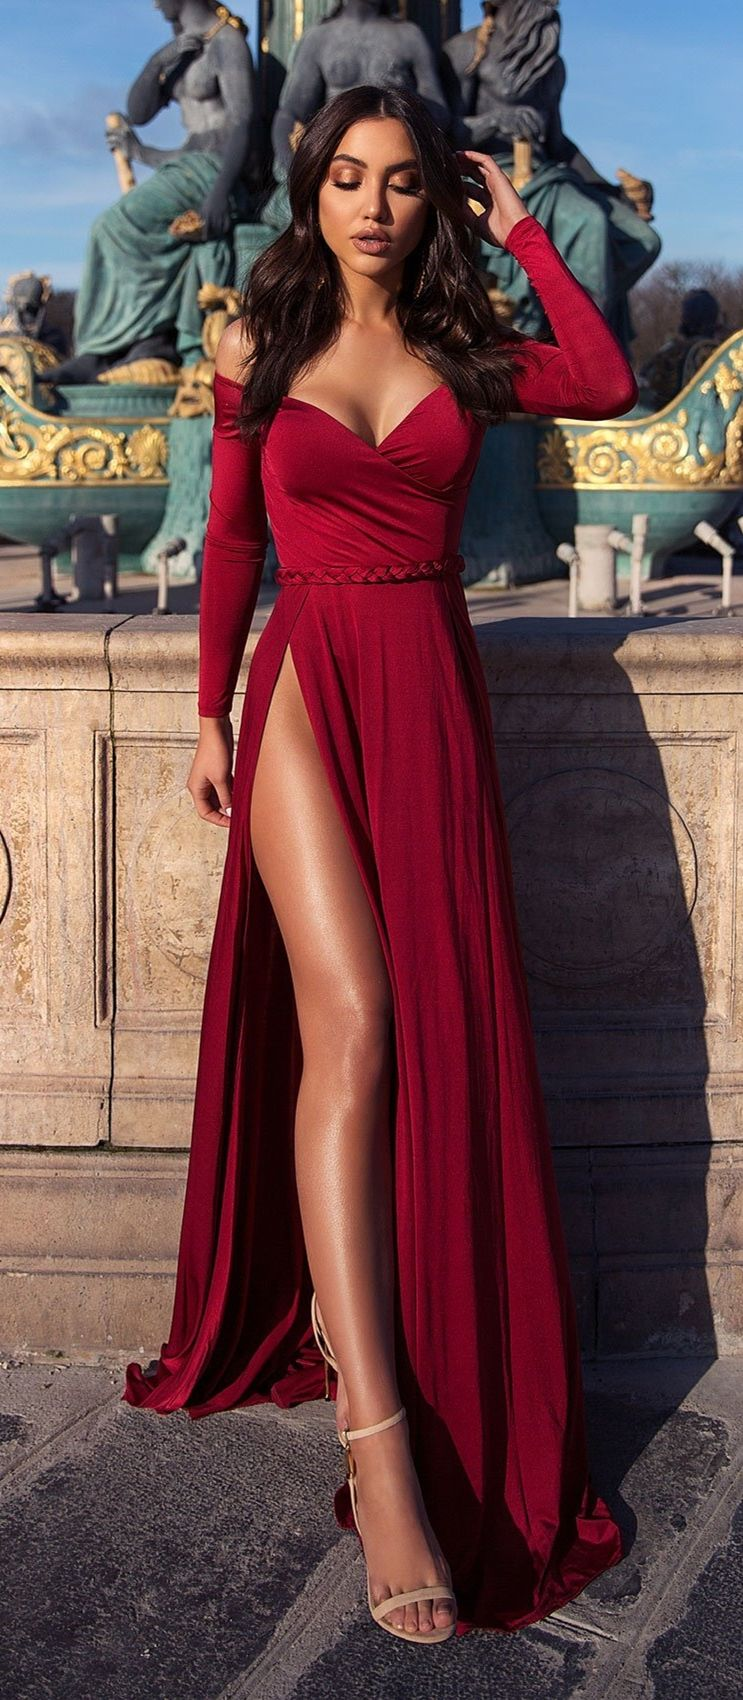 A-Line Off-the-Shoulder Long Sleeves Floor-Length Burgundy Prom Dress with Split #eveningdresses